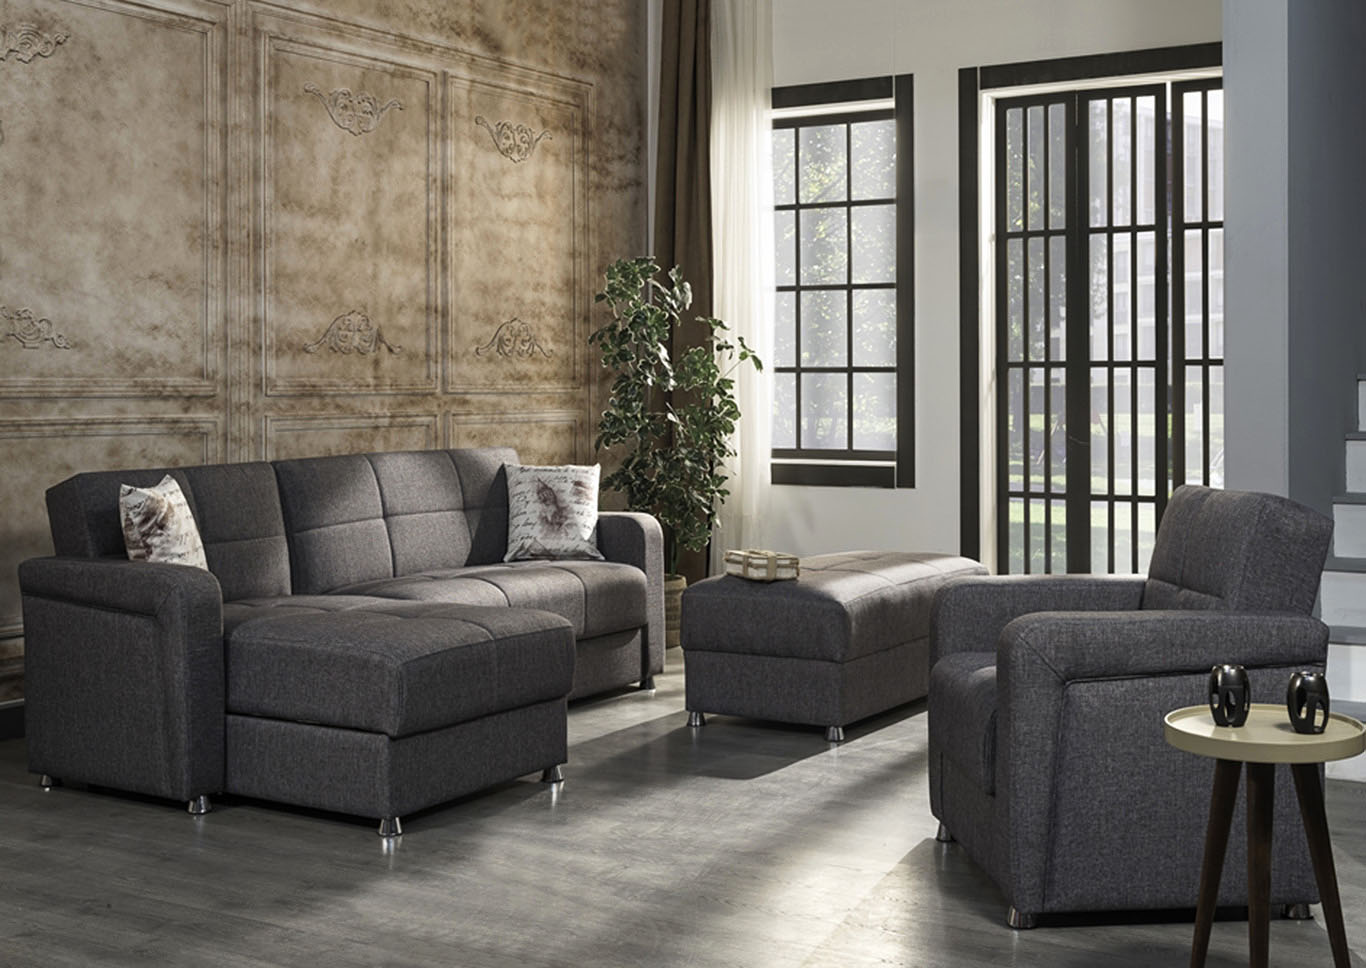 Harmony Gray Ottoman,CasaMode Functional Furniture